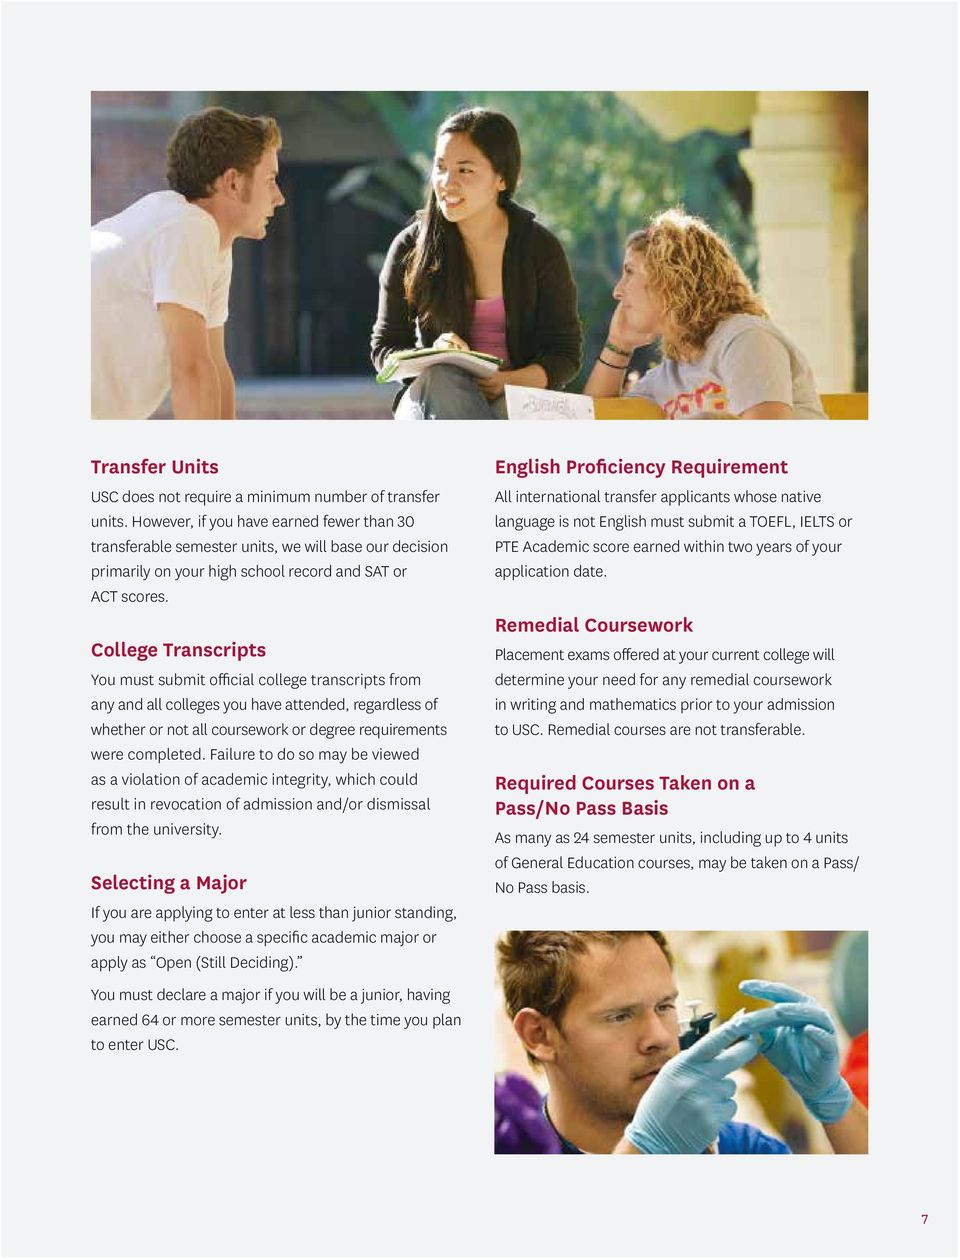 College Transcripts You must submit official college transcripts from any and all colleges you have attended, regardless of whether or not all coursework or degree requirements were completed.